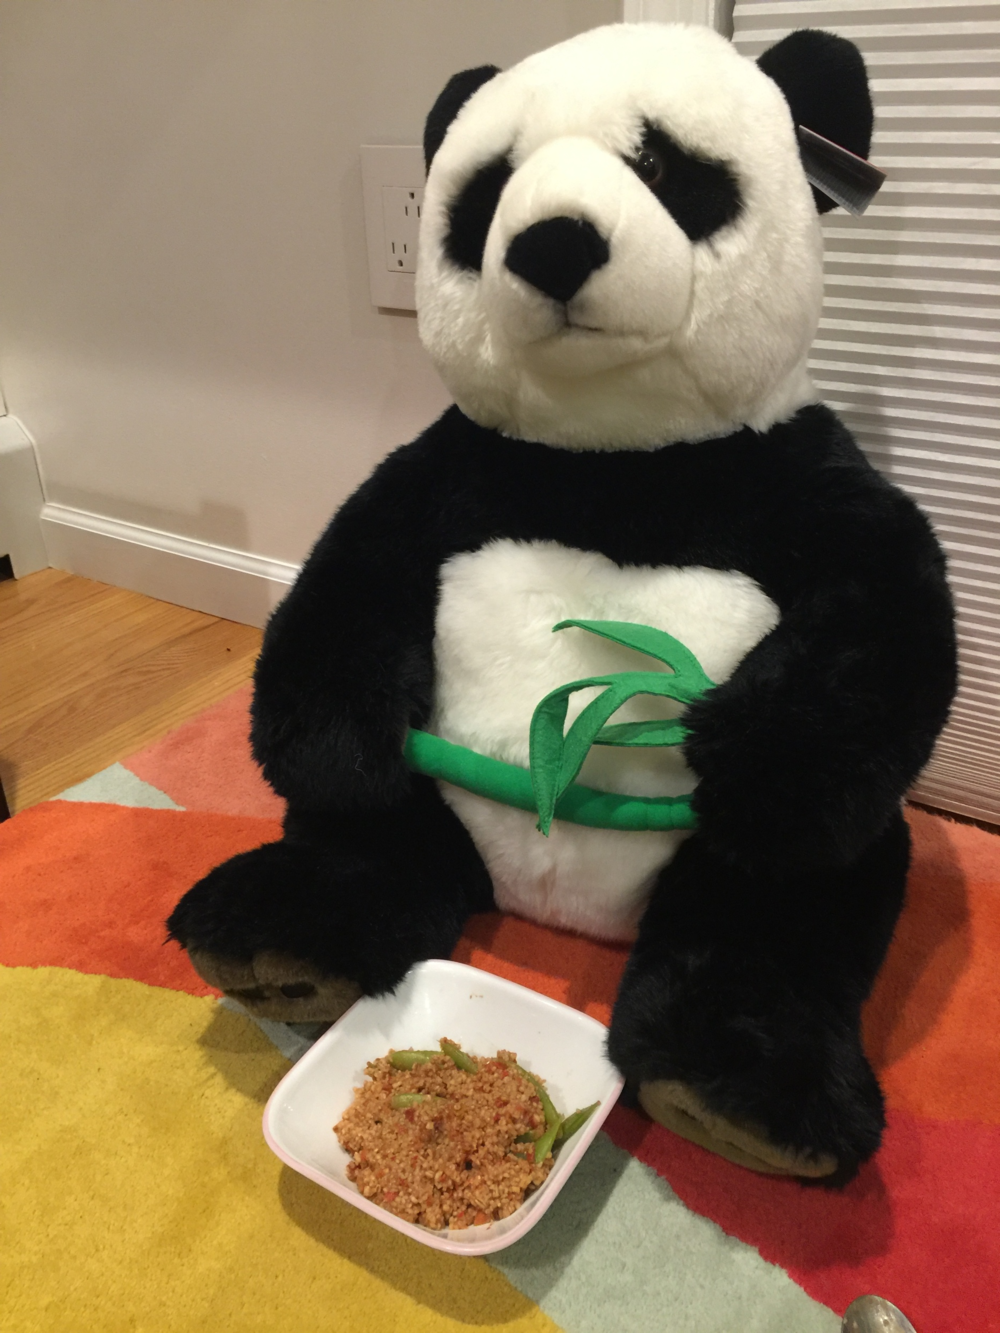 Mr. Panda was my dinner guest that night